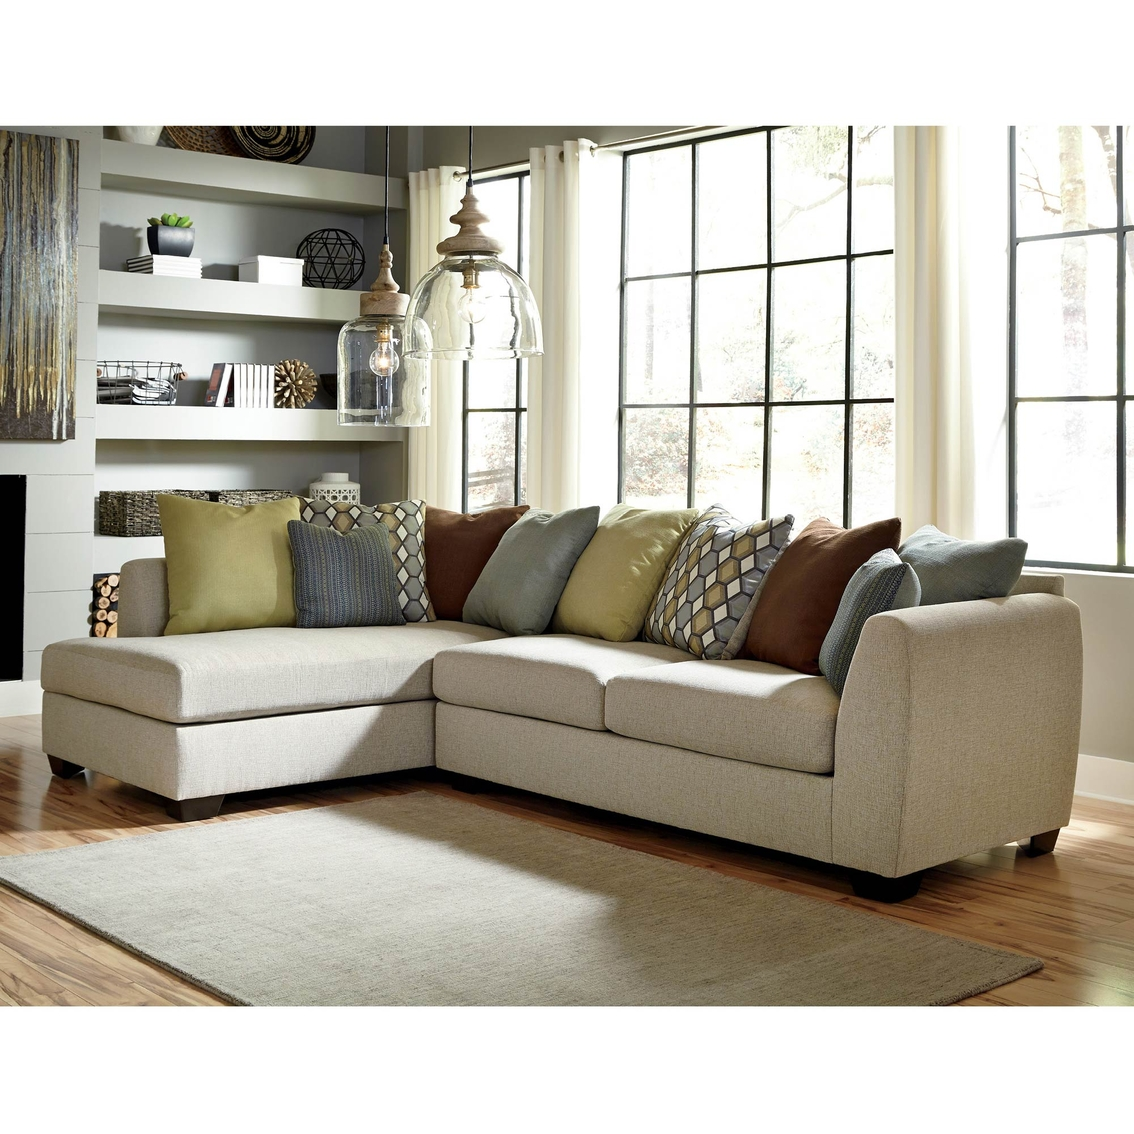 Benchcraft casheral 2 pc sectional raf sofa laf corner for Benchcraft chaise lounge